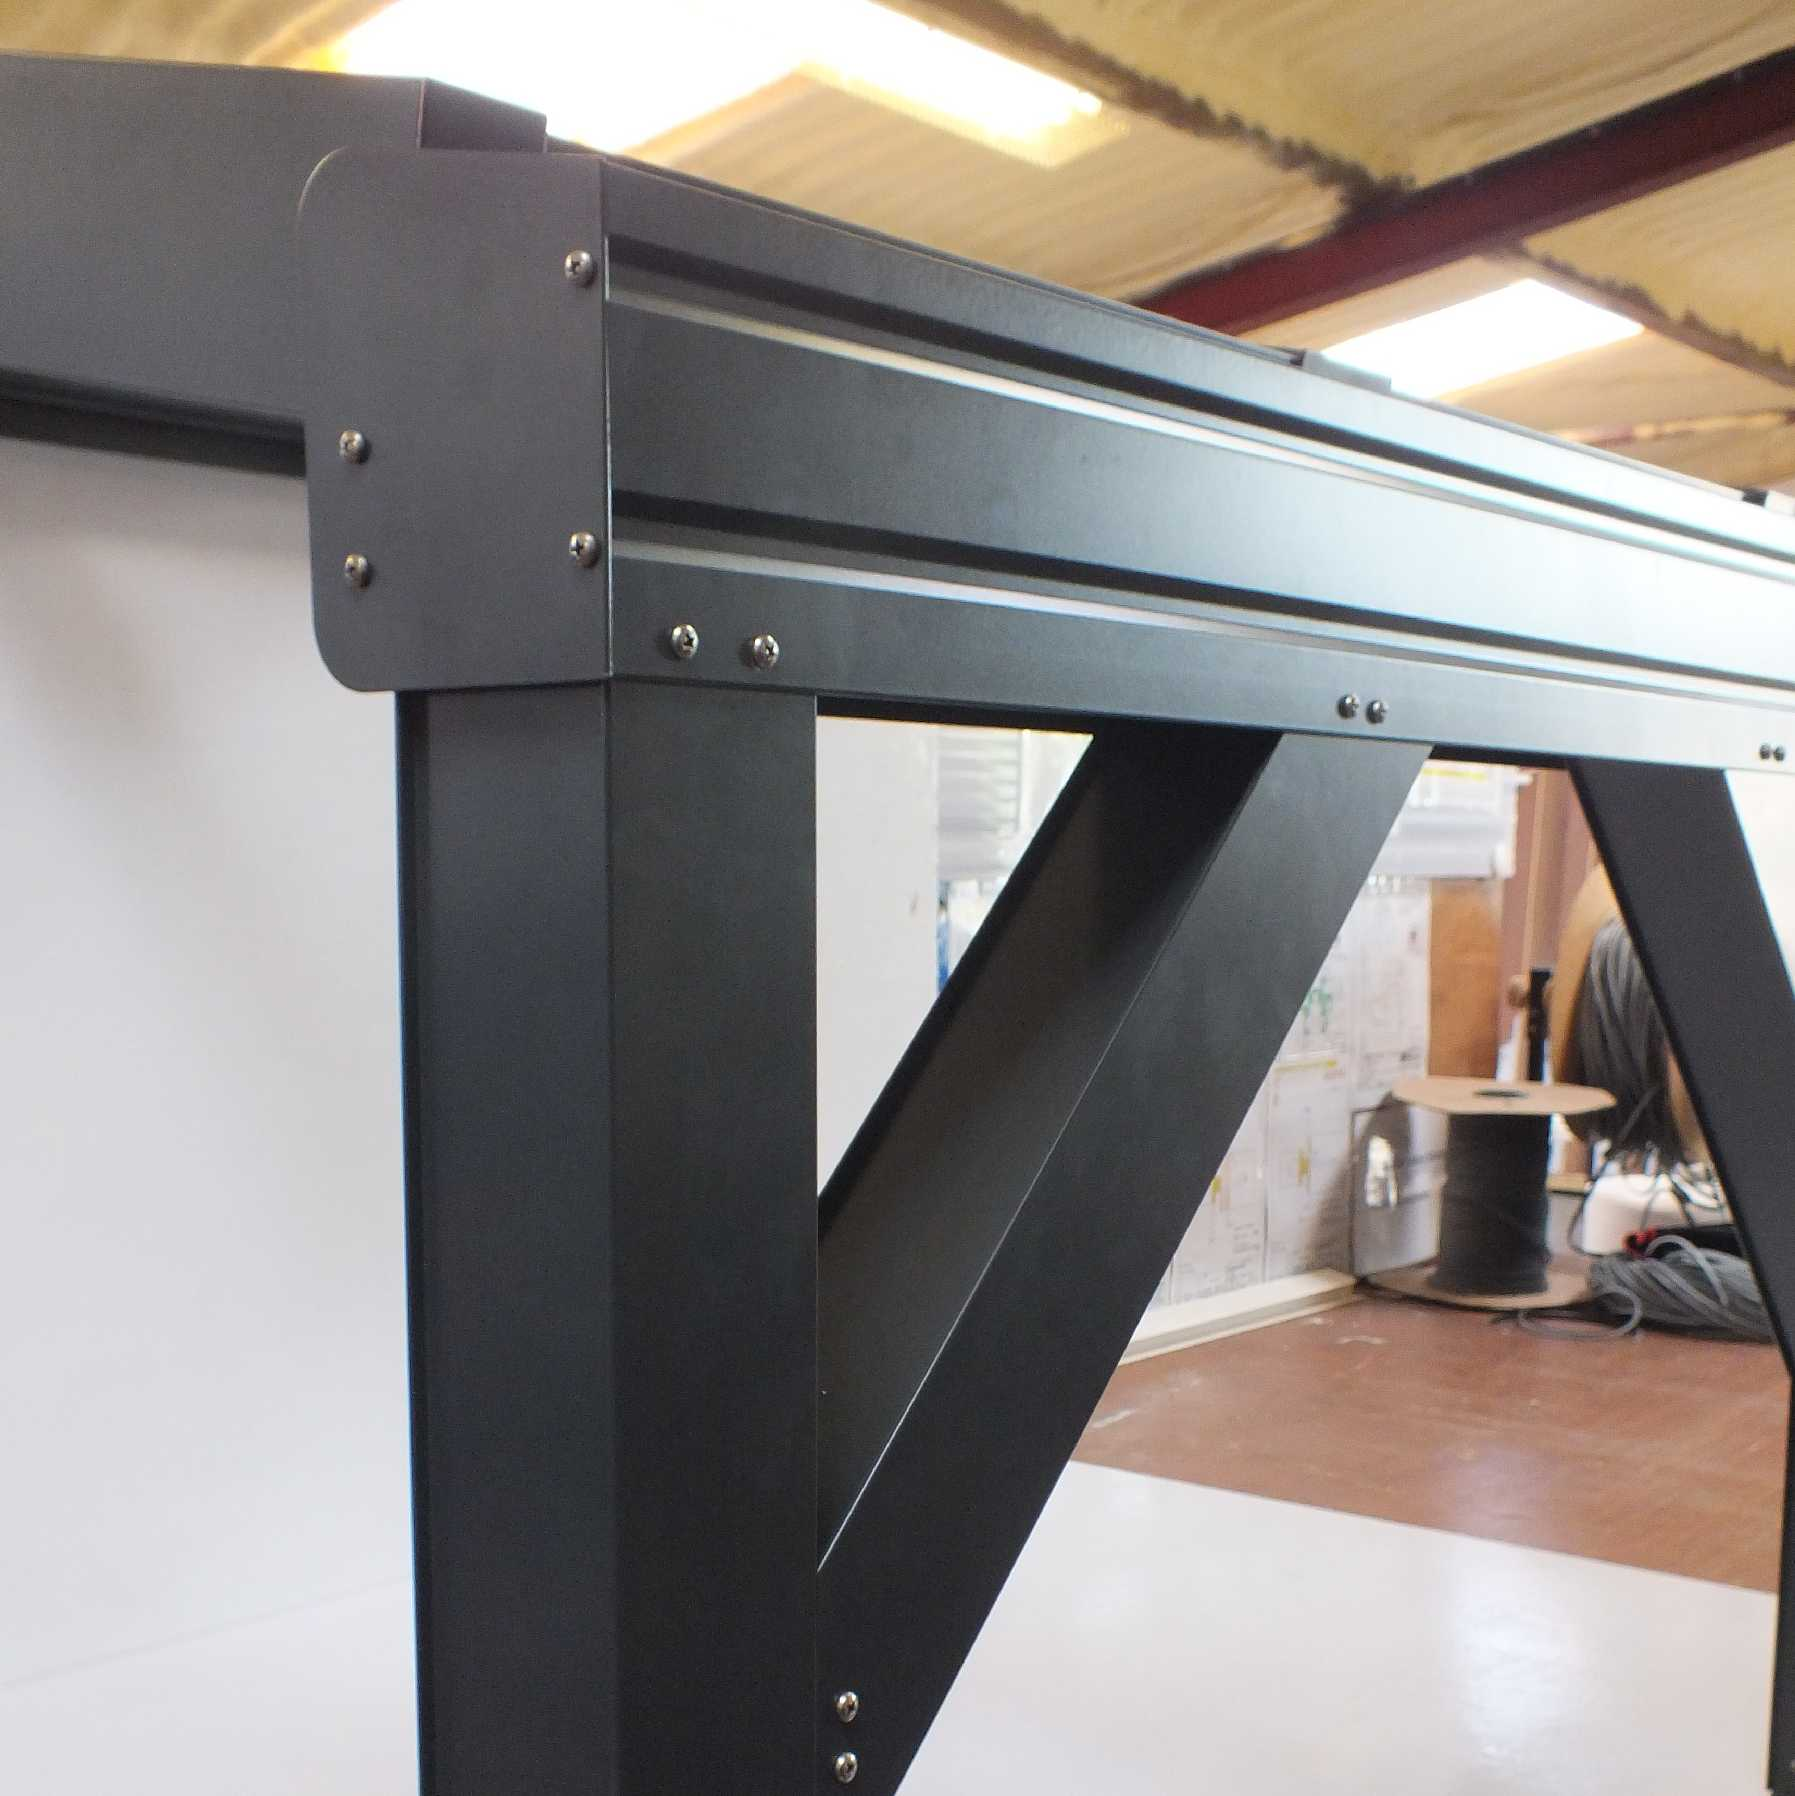 Omega Smart Lean-To Canopy, Anthracite Grey, UNGLAZED for 6mm Glazing - 4.9m (W) x 2.0m (P), (3) Supporting Posts from Omega Build